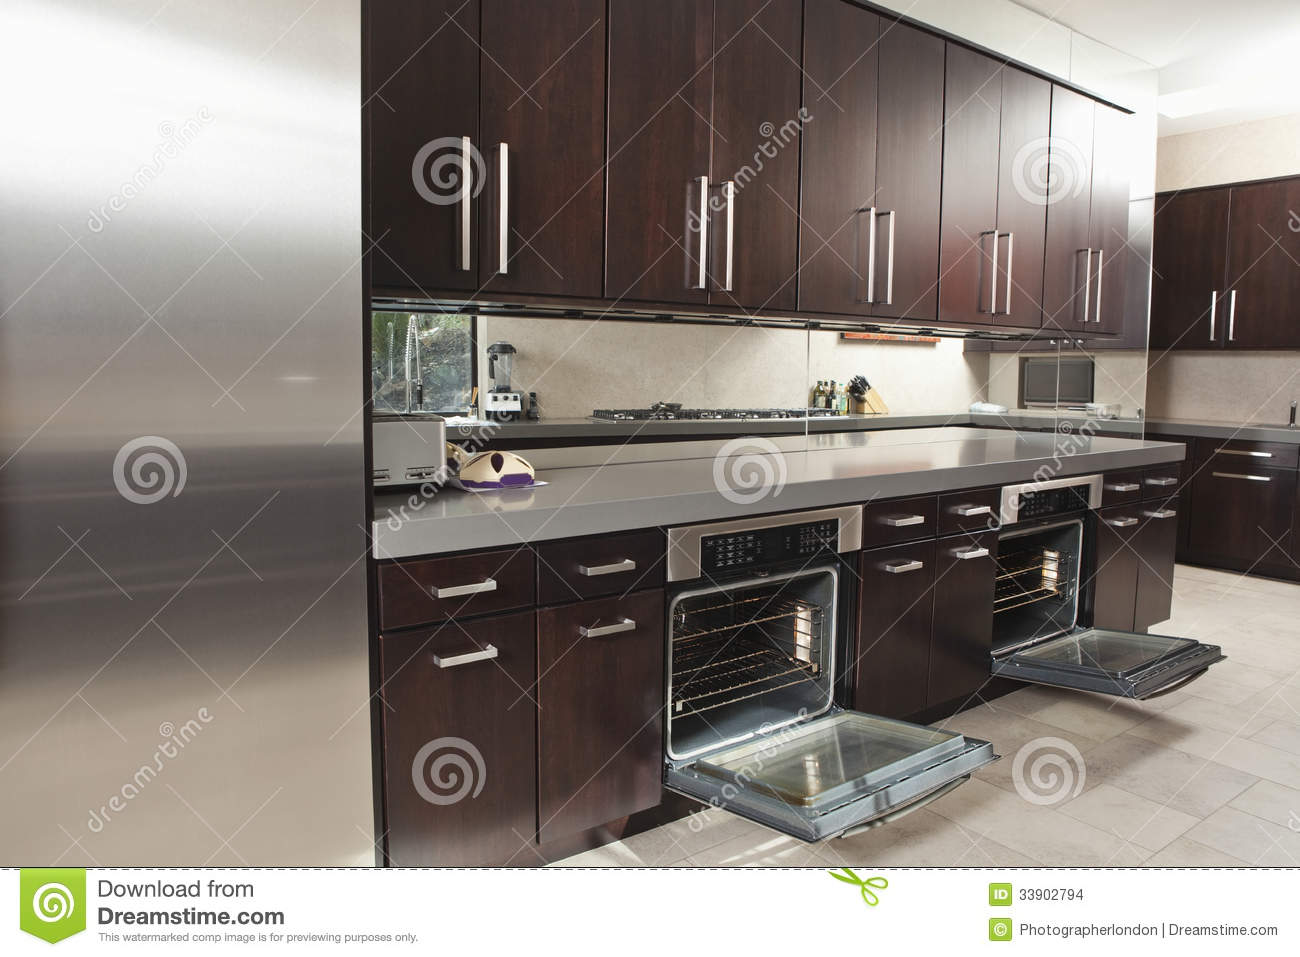 Commercial Kitchen Cabinet Commercial Kitchen Cupboard With Storage Cabinet Kitchen Cupboard